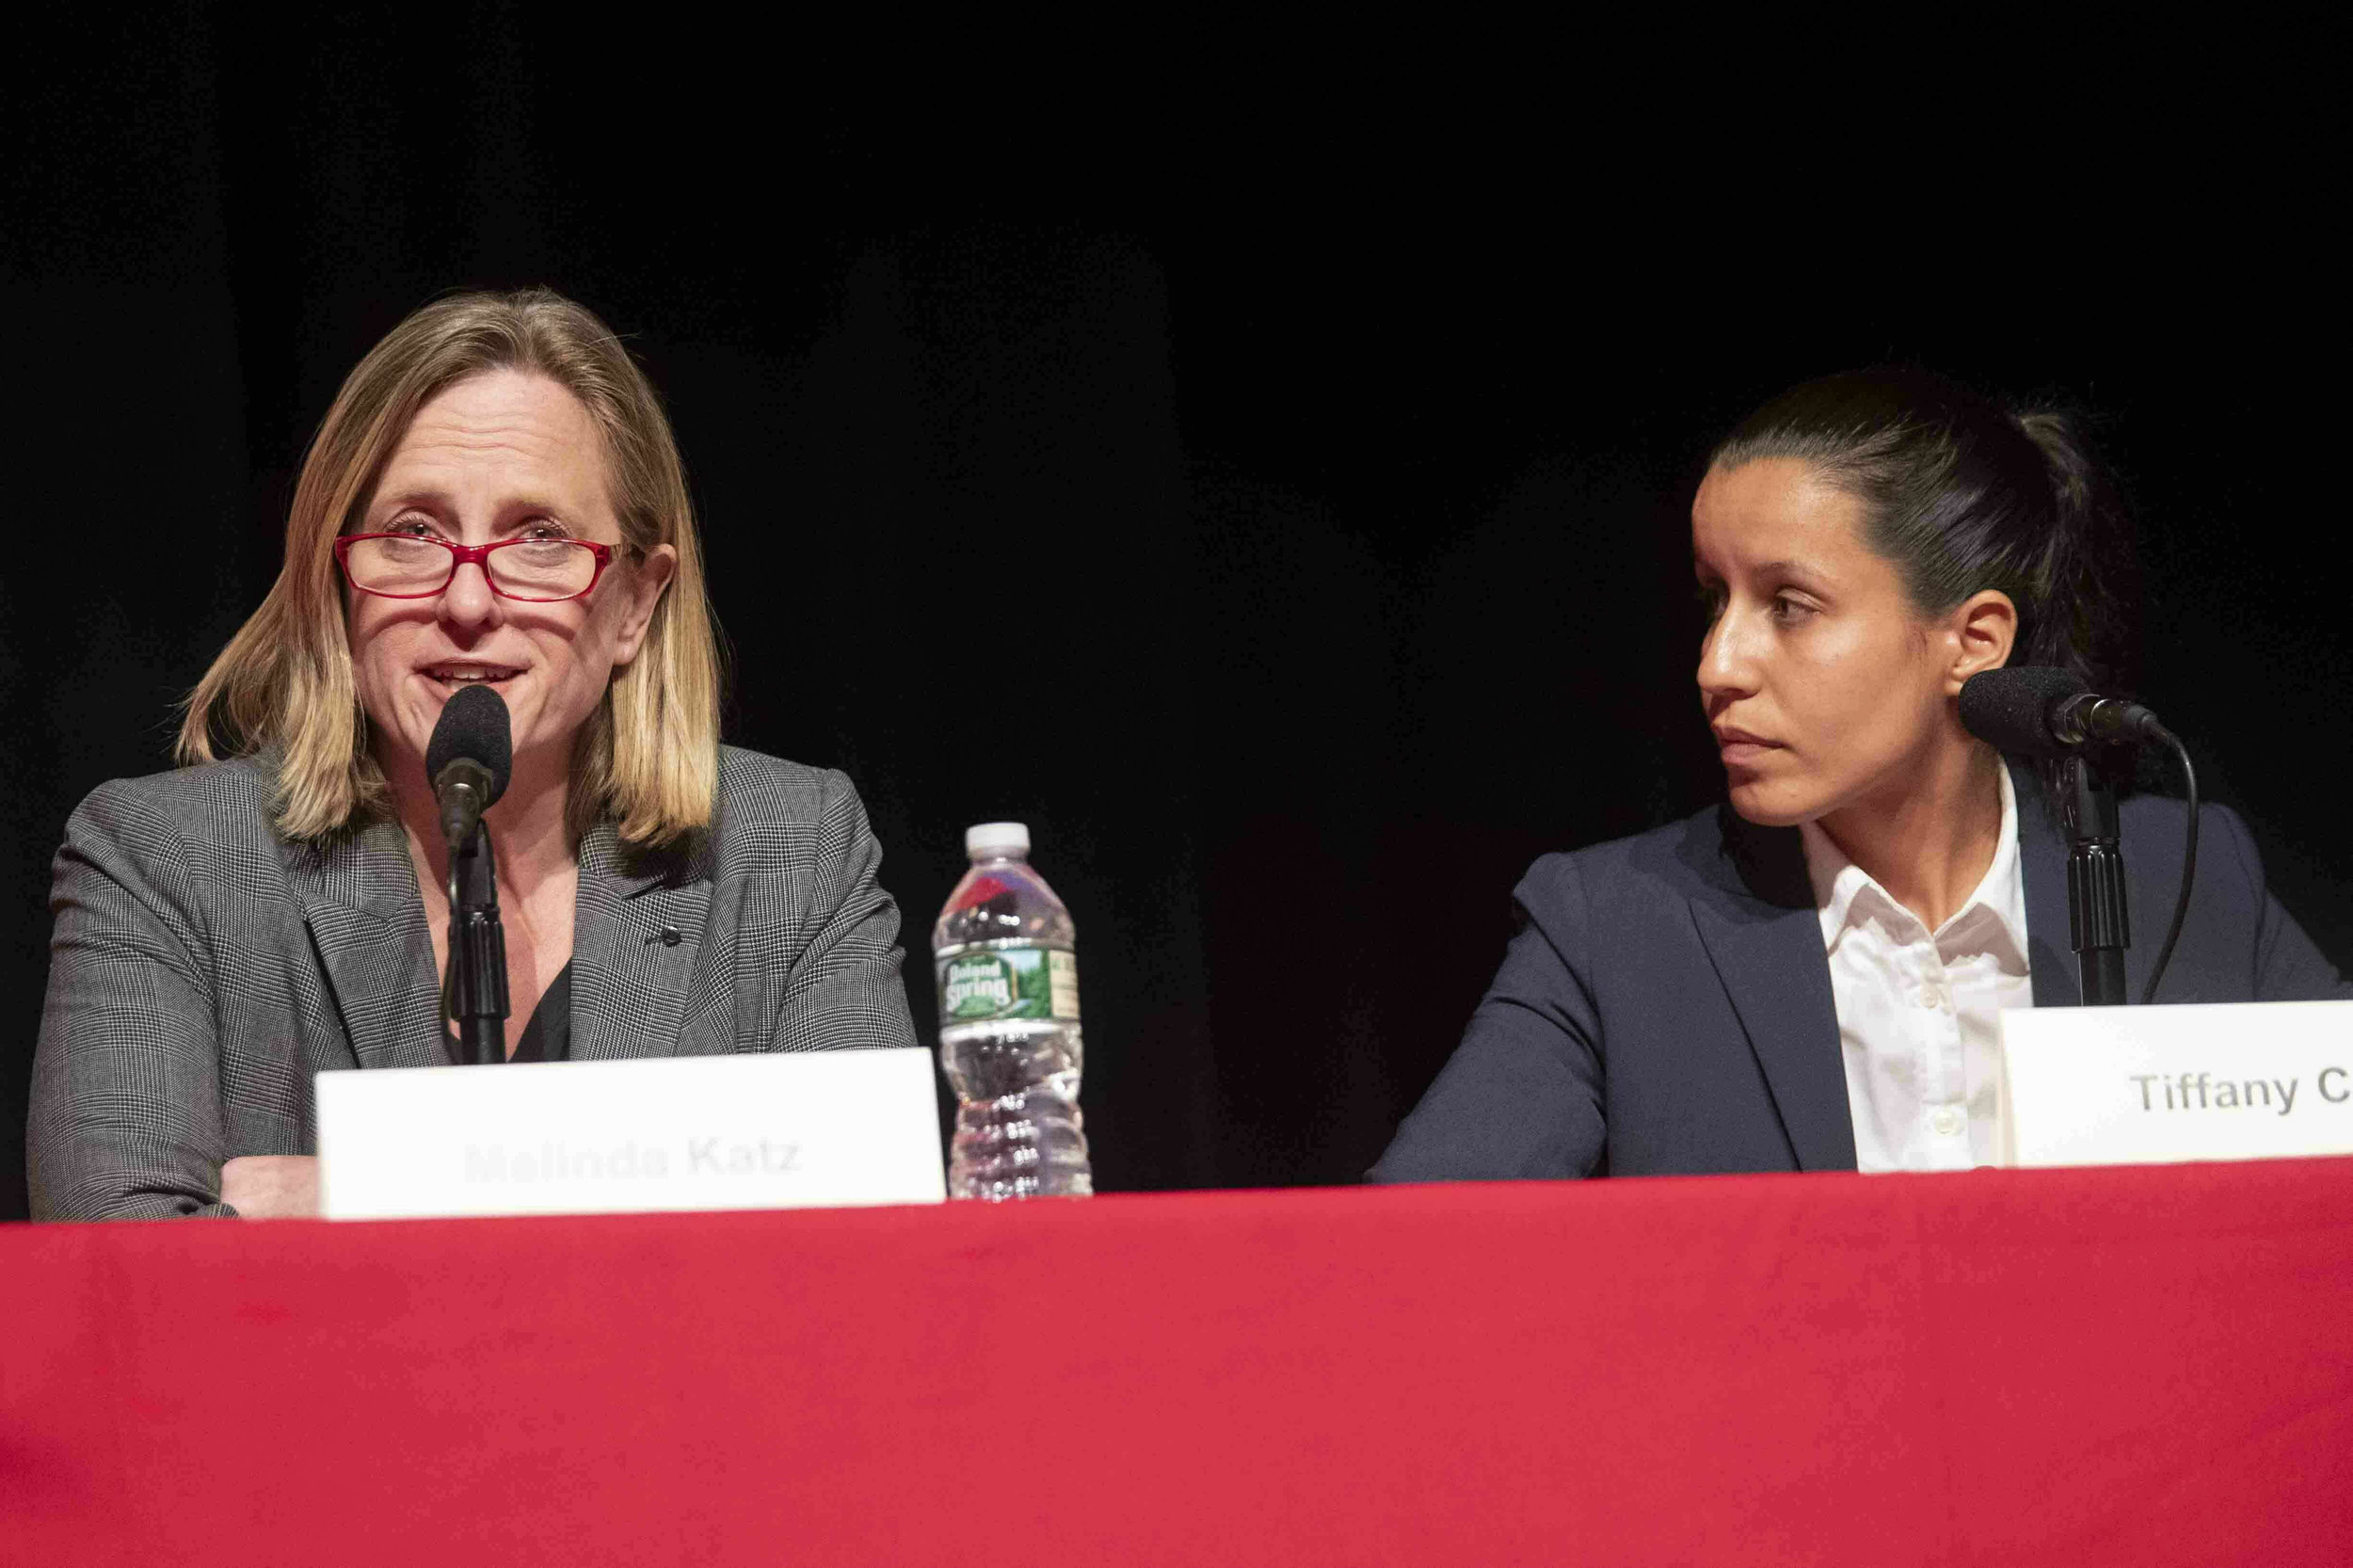 MELINDA KATZ (LEFT) AND TIFFANY CABÁN (RIGHT) AT A JUNE FORUM HOSTED BY THE  EAGLE  AND NAACP AT ST. JOHN'S UNIVERSITY. Katz defeated Caban by 55 votes in the Democratic primary for Queens DA. AP PHOTO/MARY ALTAFFER, FILE